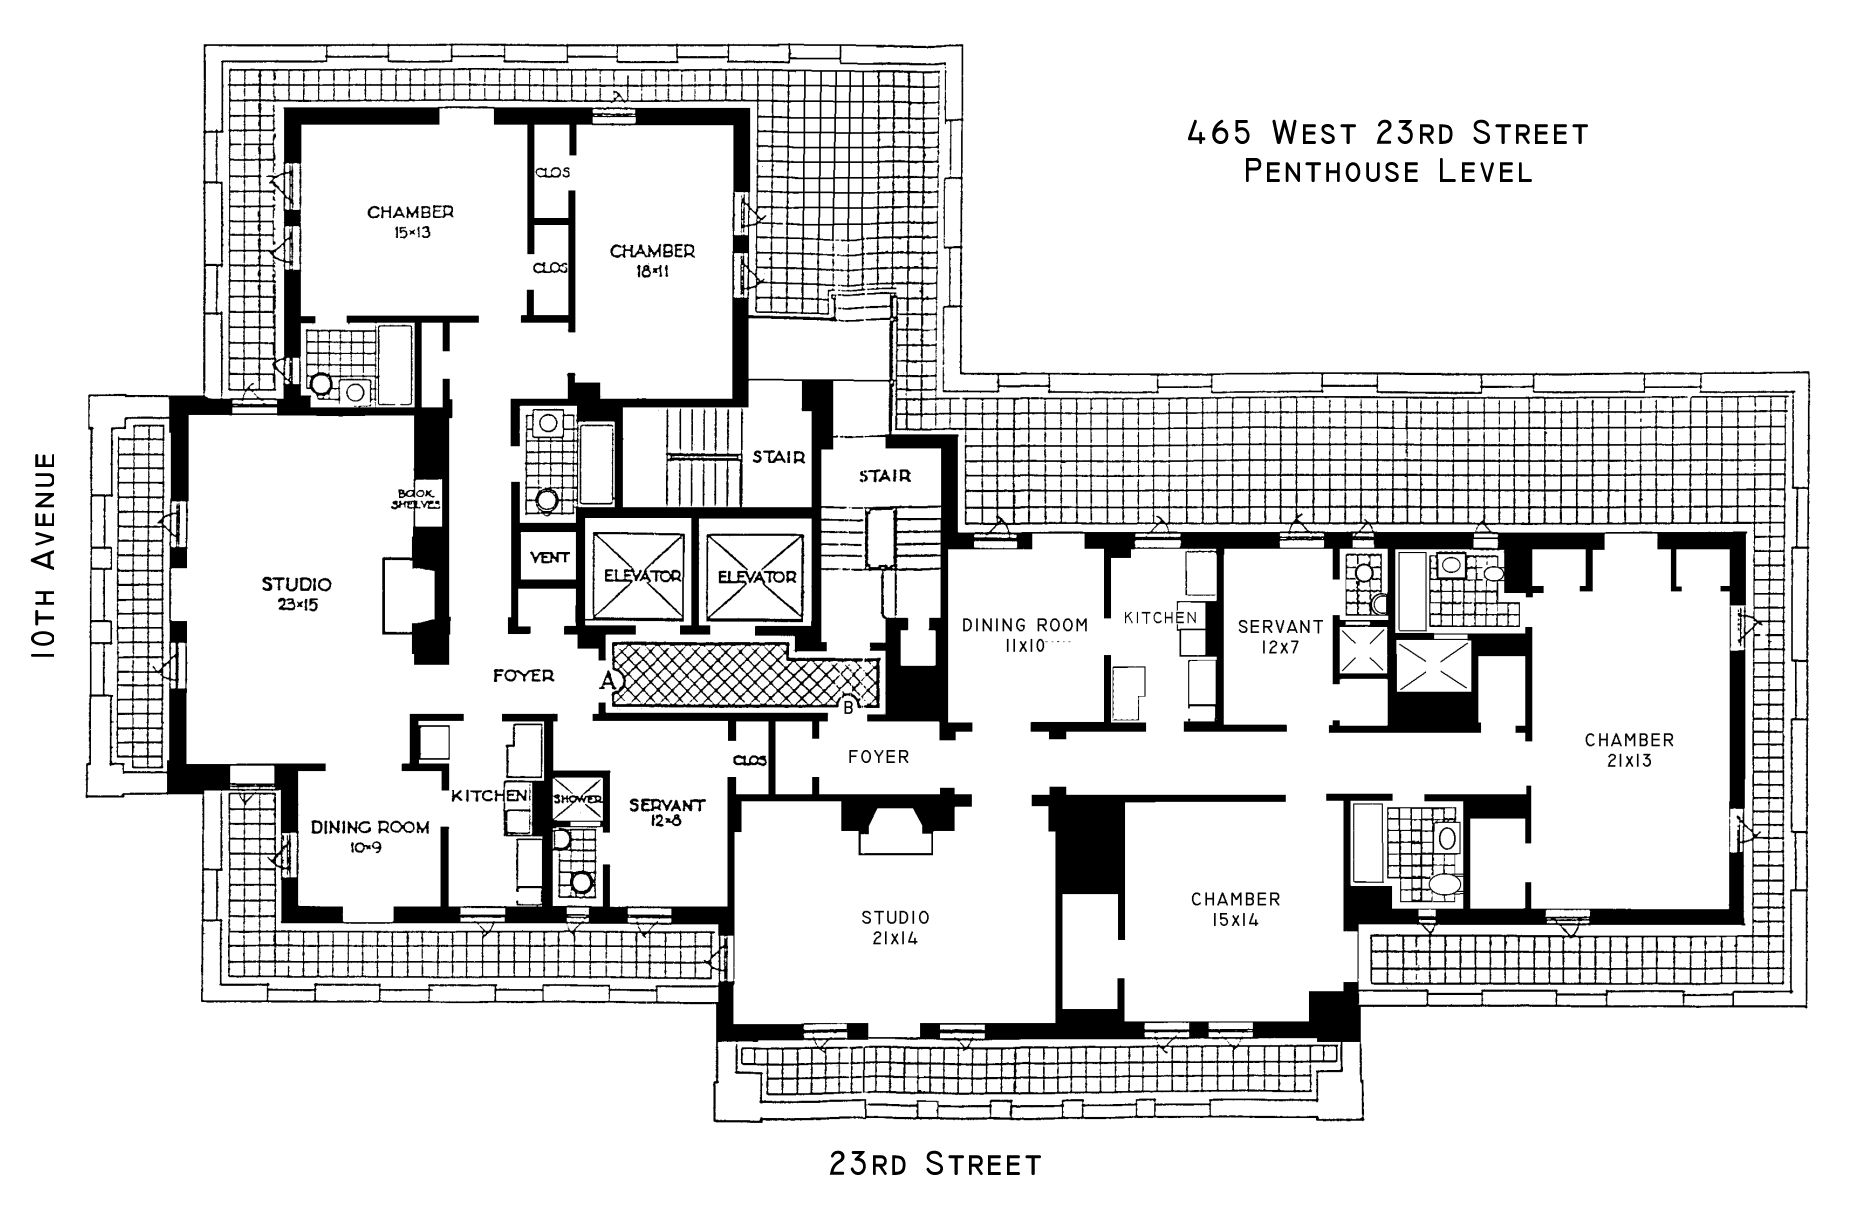 London terrace towers floorplans new york usa for Apartment floor plans london